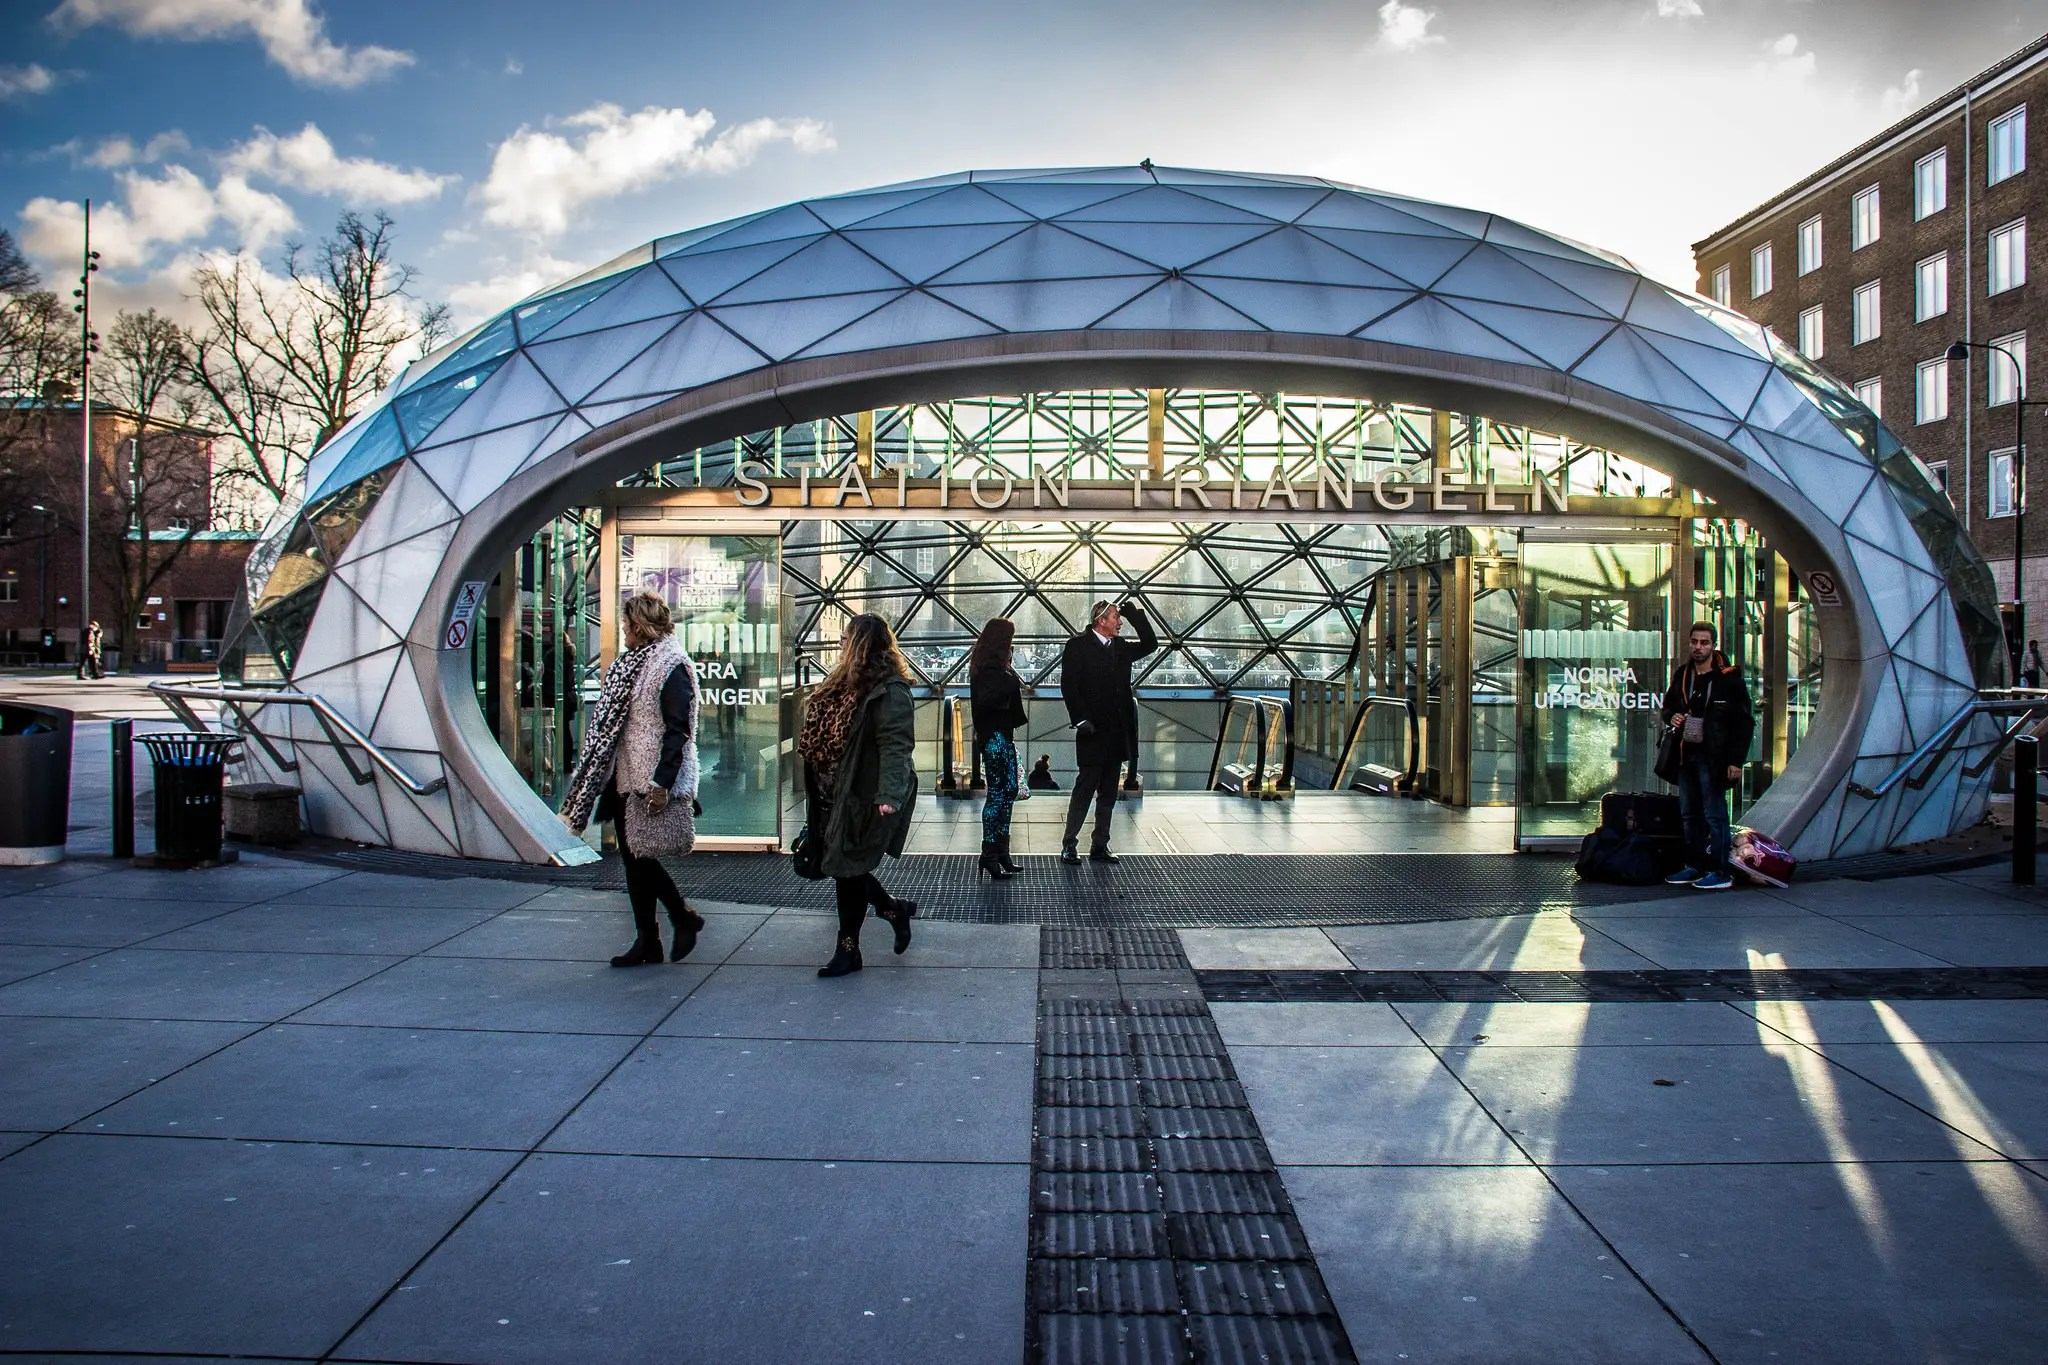 97. The Triangeln station in Malmö, Sweden, looks more like a portal into the future than a train.